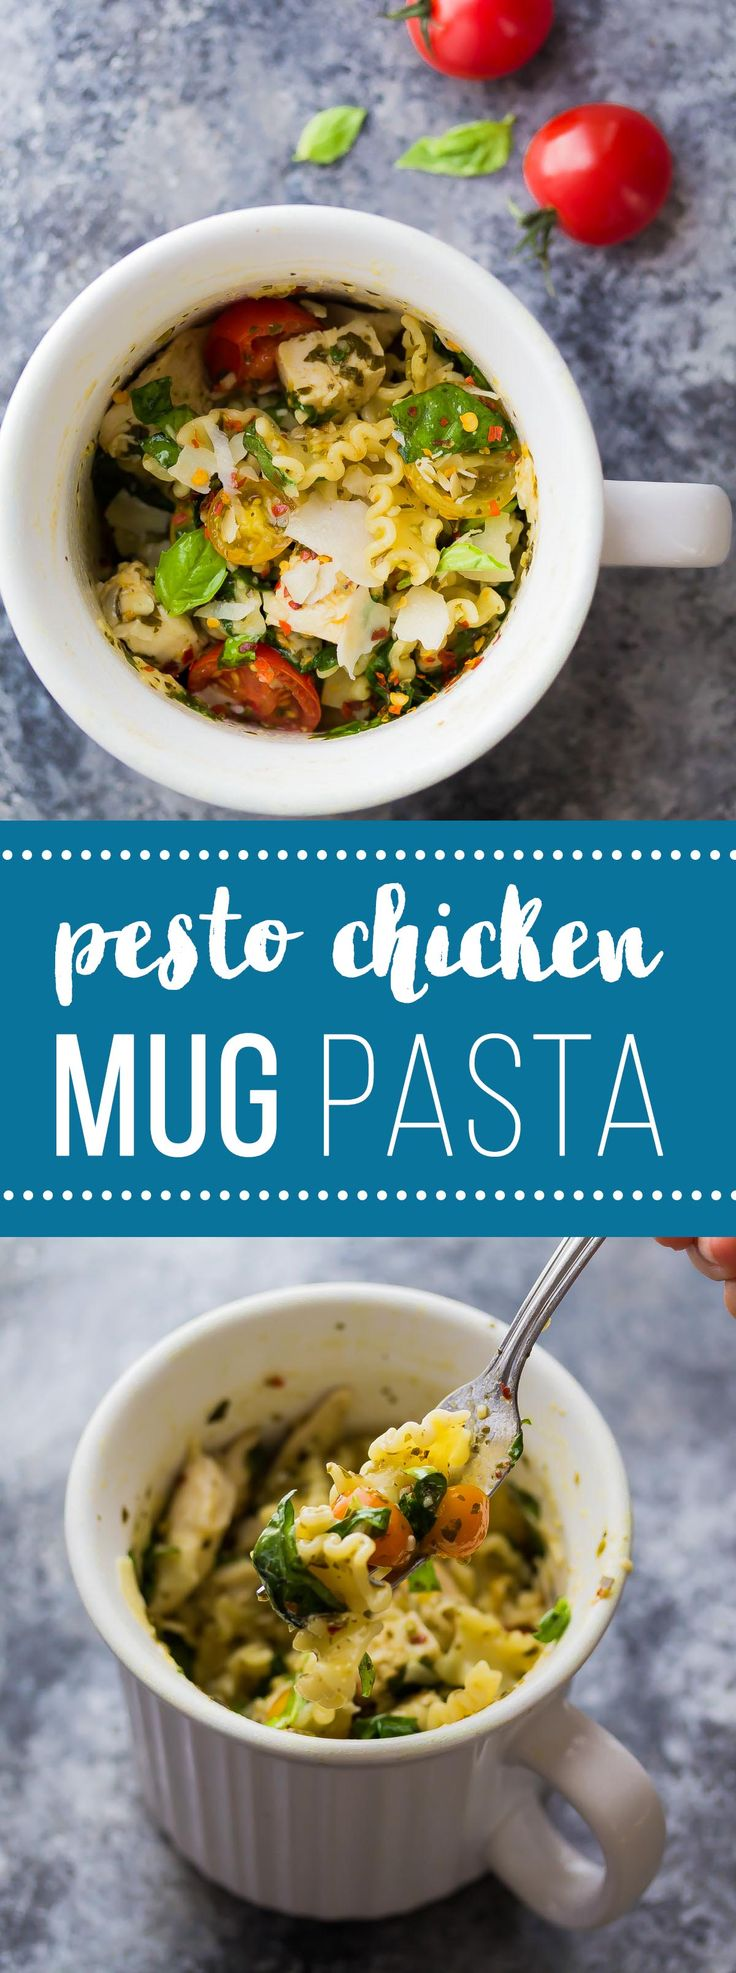 Superior This Pesto Chicken Mug Pasta Cooks In The Microwave In Just 10 Minutes! The  Perfect Dinner For One, Dorm Room Meal, Or Lunch On The Go! View The Full  Rec. Part 17